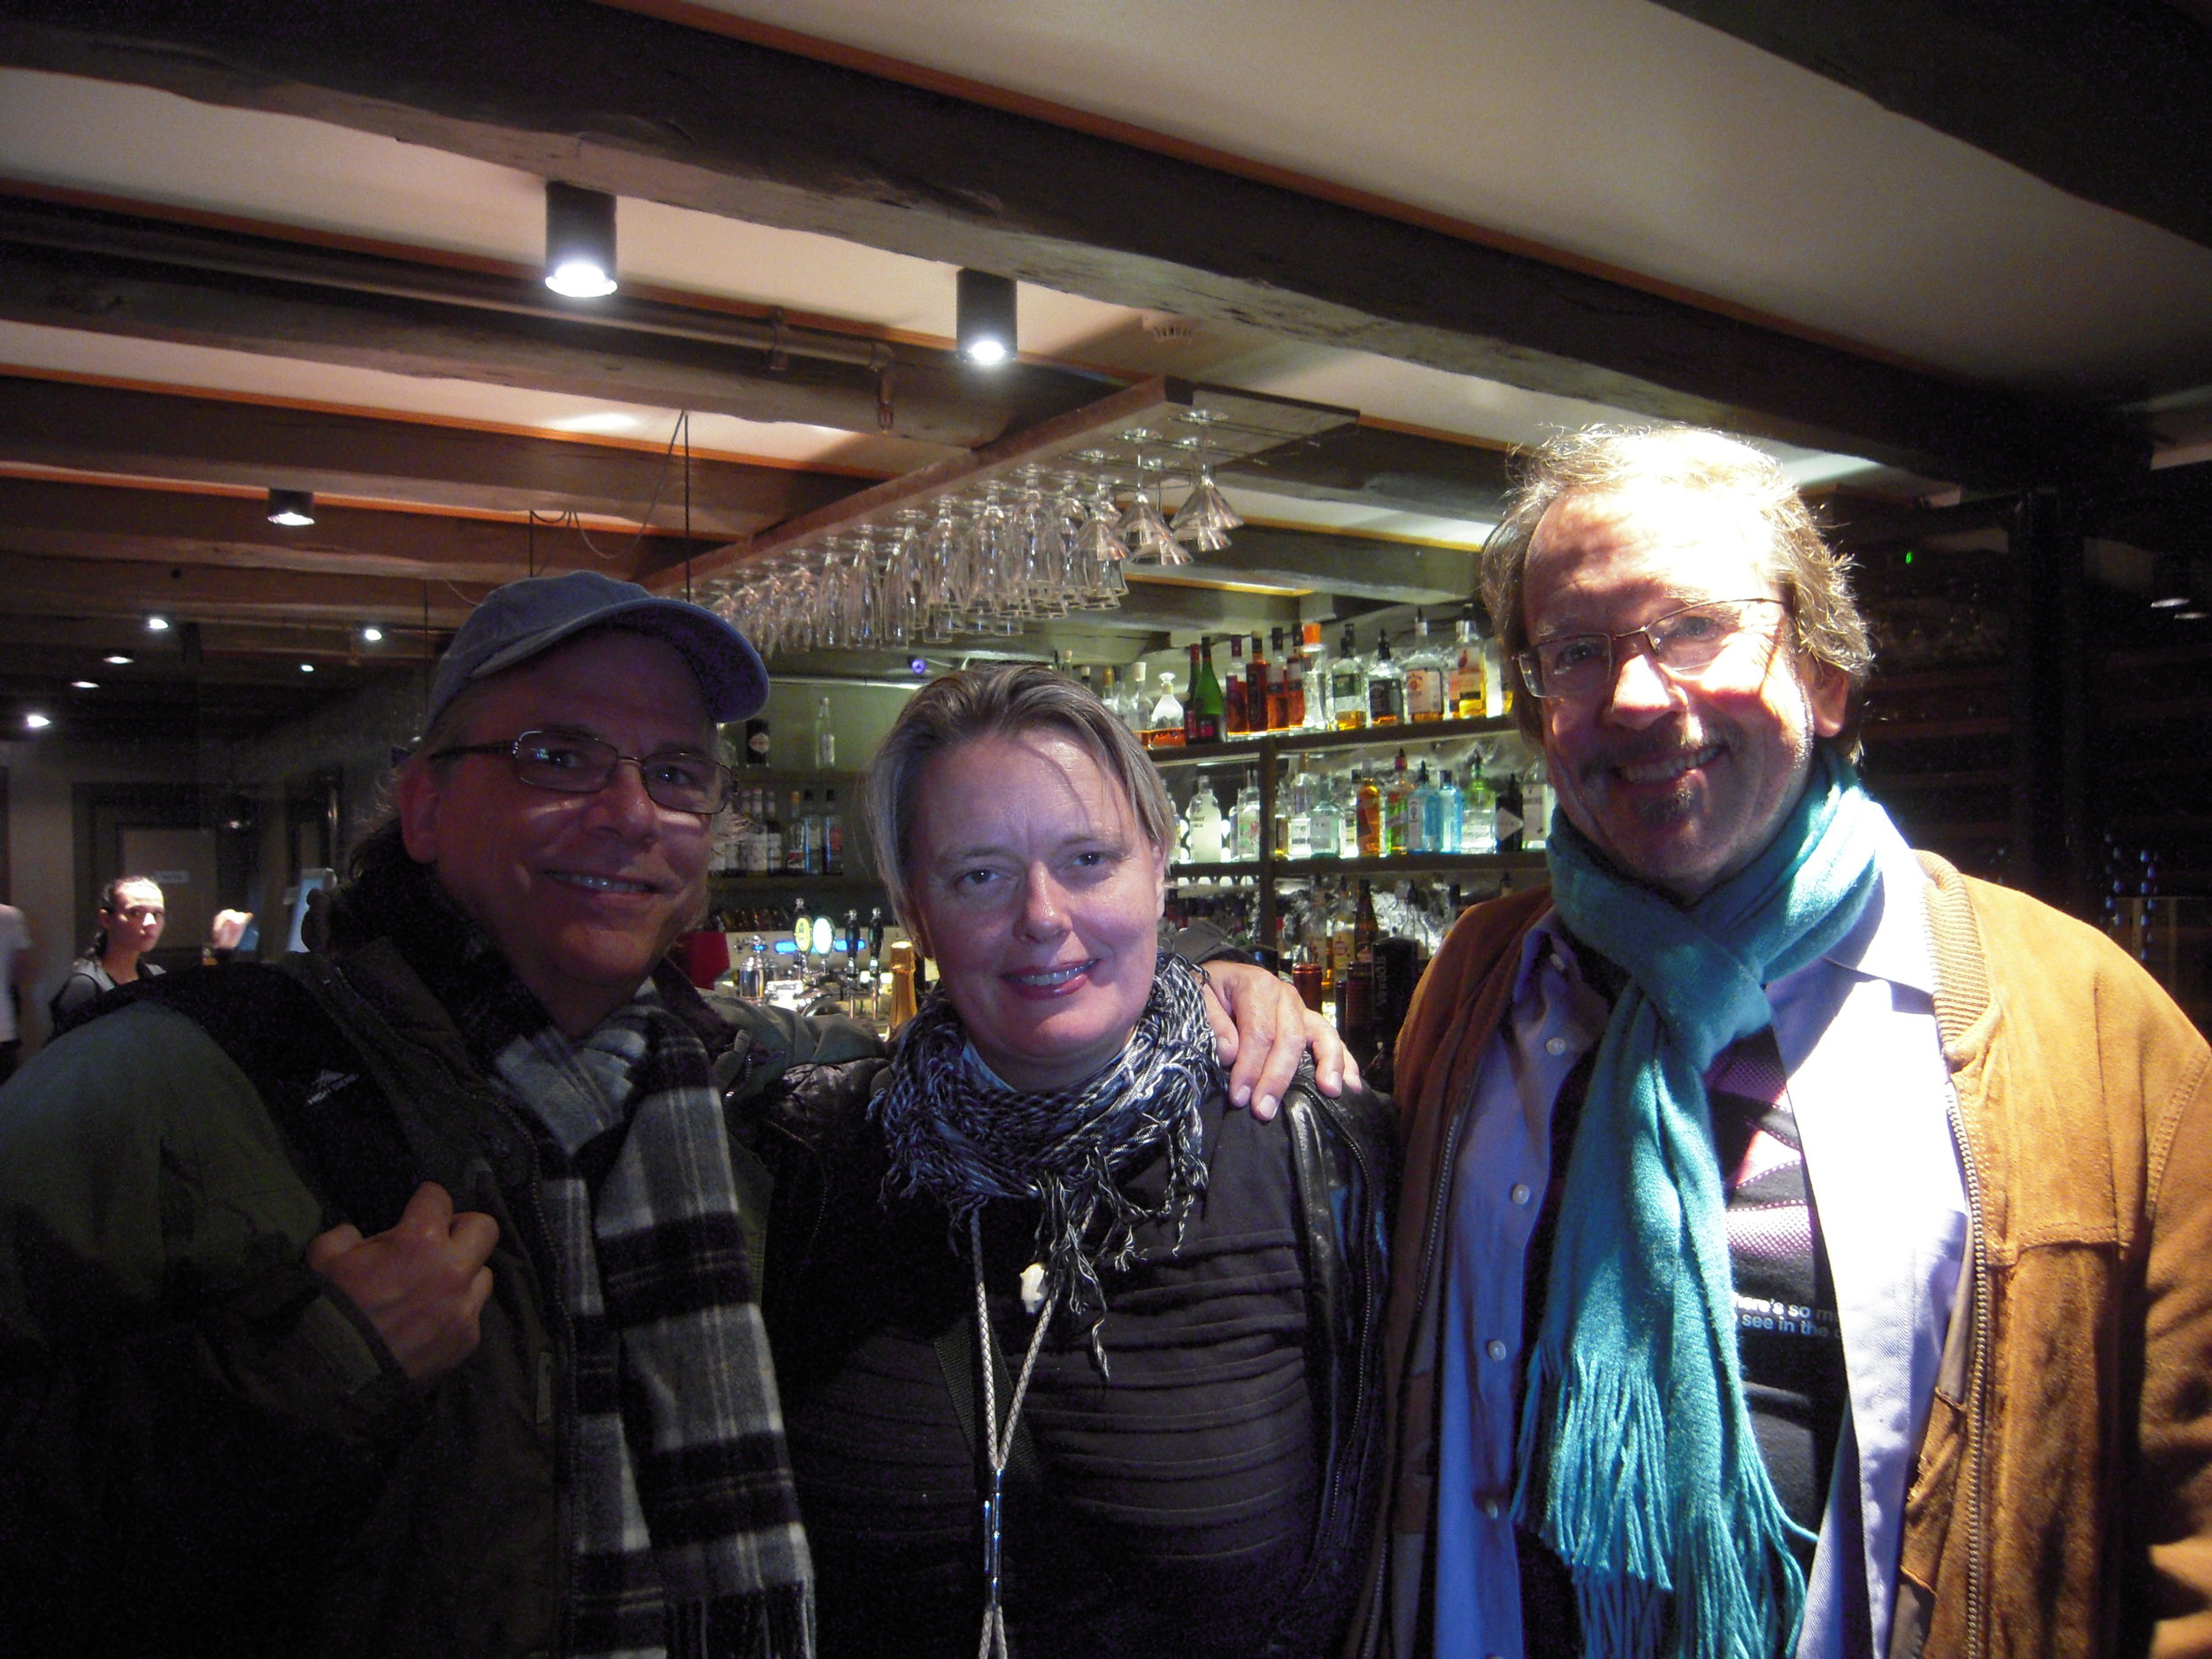 Dinner in Reykjavik, Iceland with Stephen Silha and Hrafnhildur Gunnarsdóttir, a film editor and political activist. She lived in San Francisco for several years, now home in Iceland.